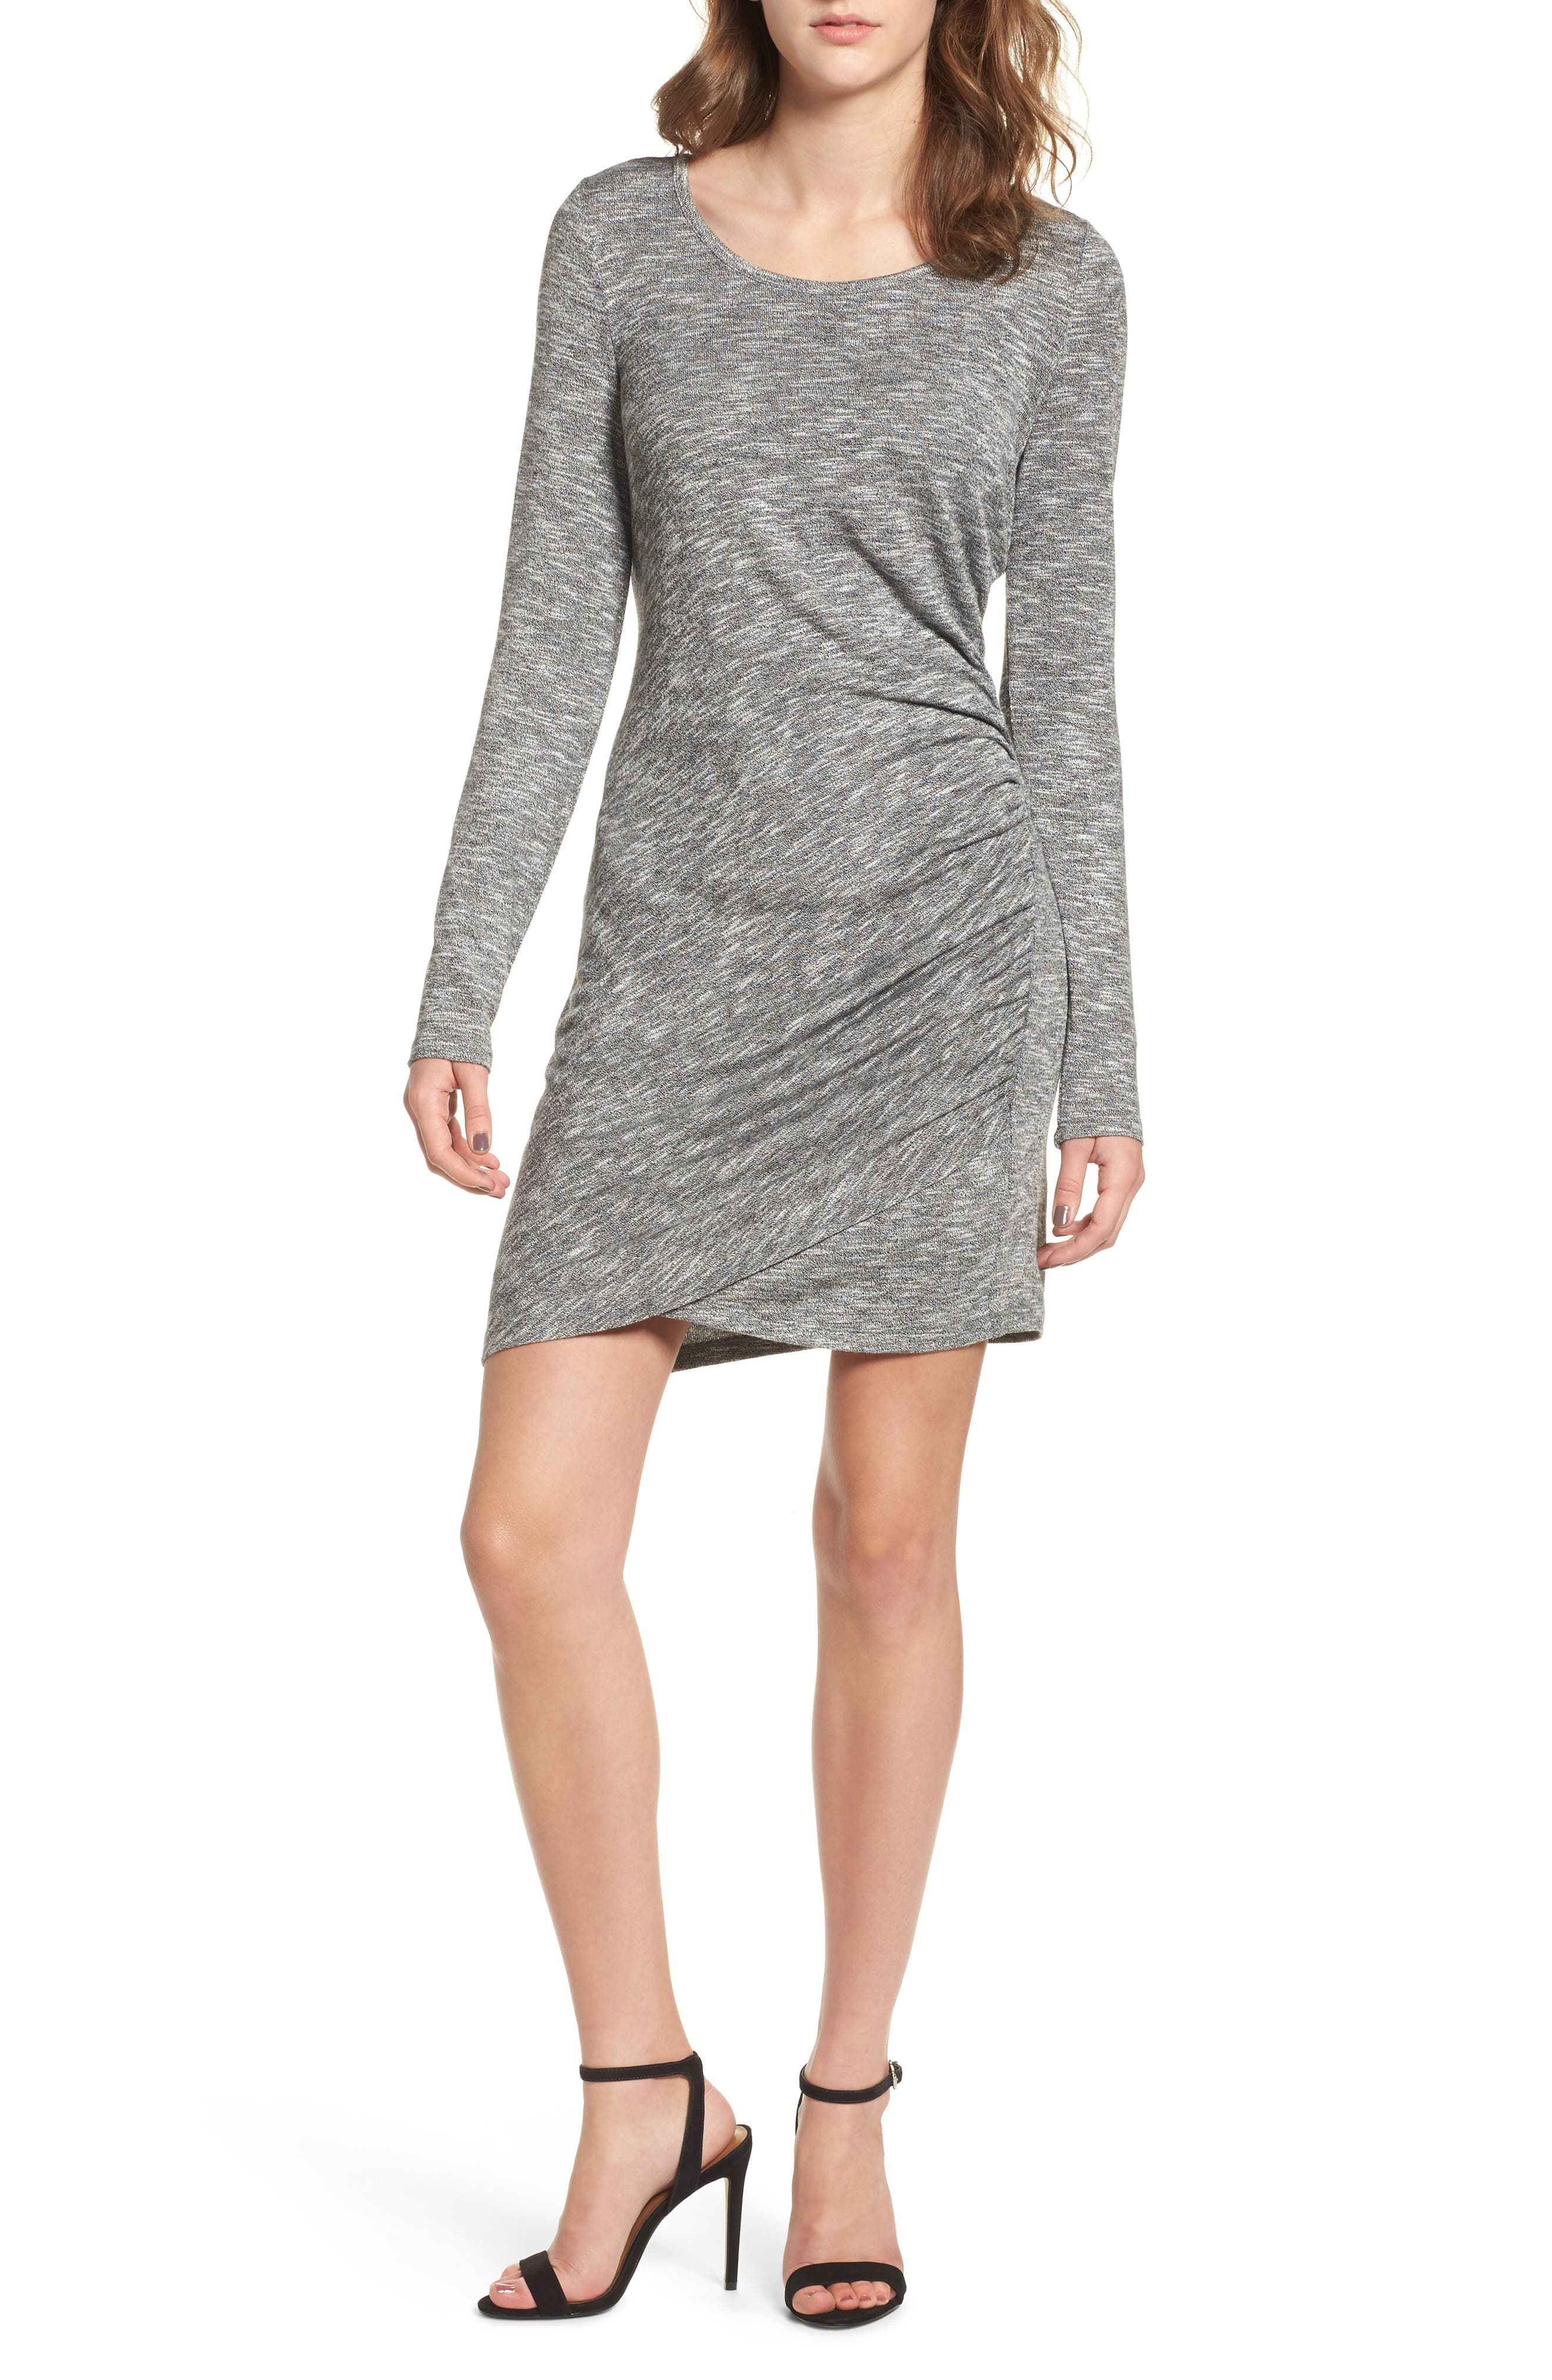 Ruched Knit Dress,                             Main thumbnail 1, color,                             020